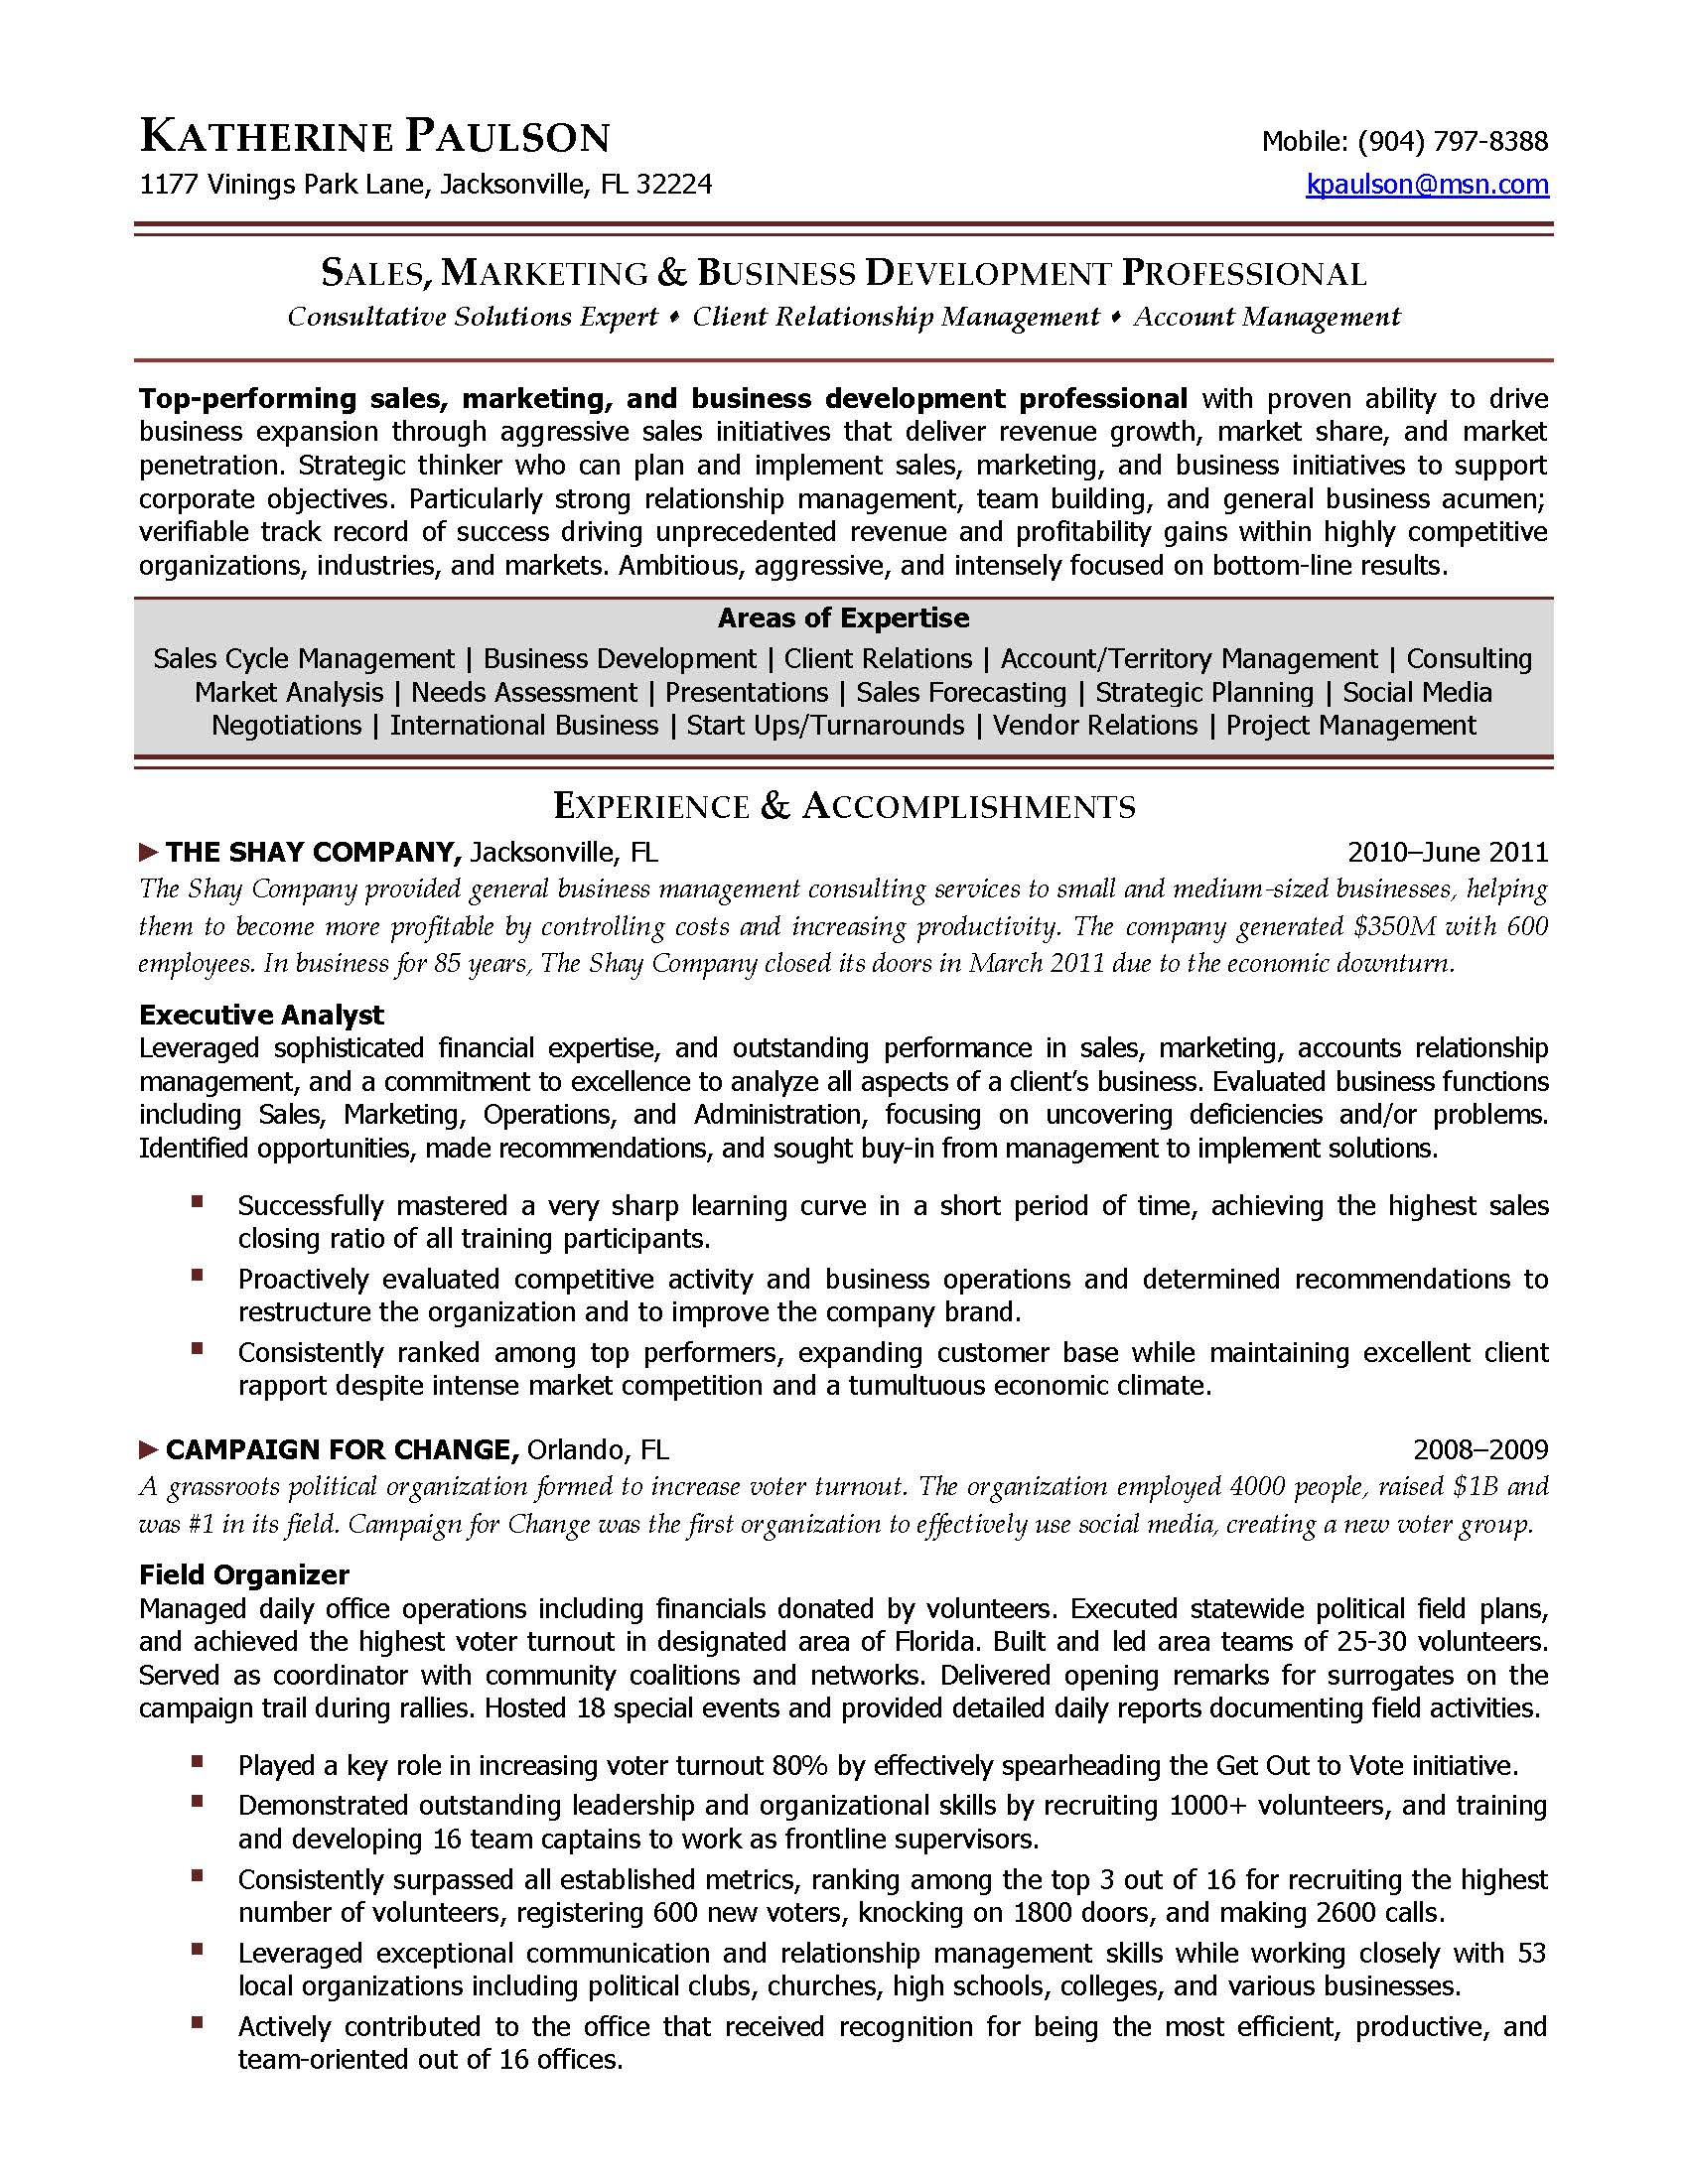 Resume Synonym For Managed In A Resume synonyms for served resume word processor cv cover samples sales and marketing s format